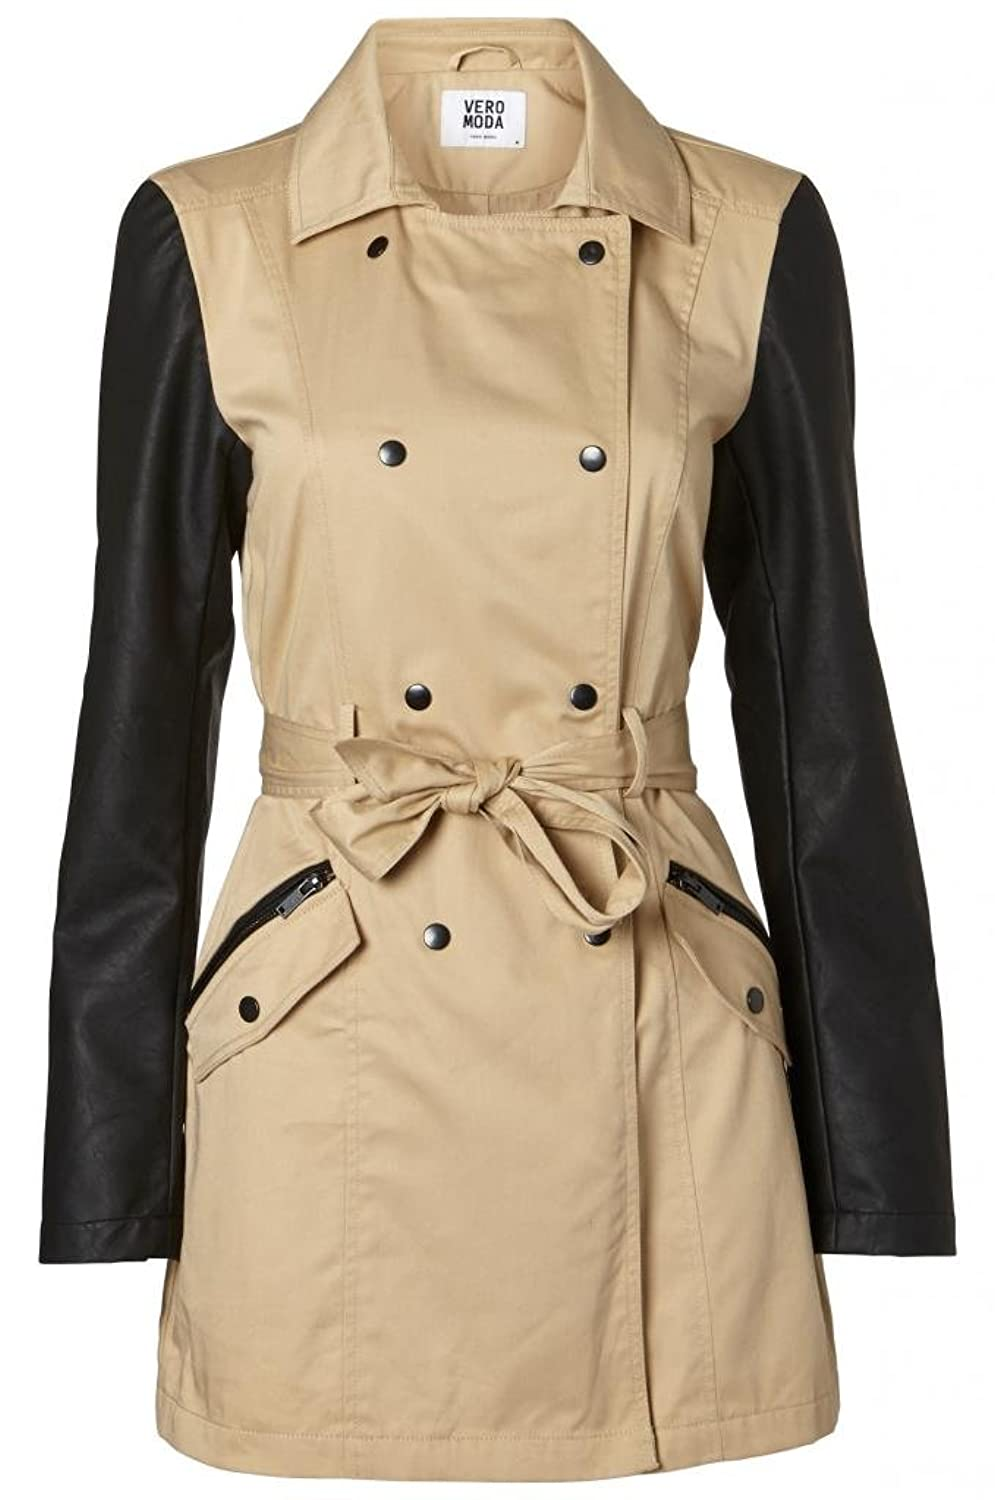 Vero Moda - Track Faux Leather Sleeve Spring Trench Coat кастрюля сфер 5 0л стекл кр вишн imperio vitross 936656